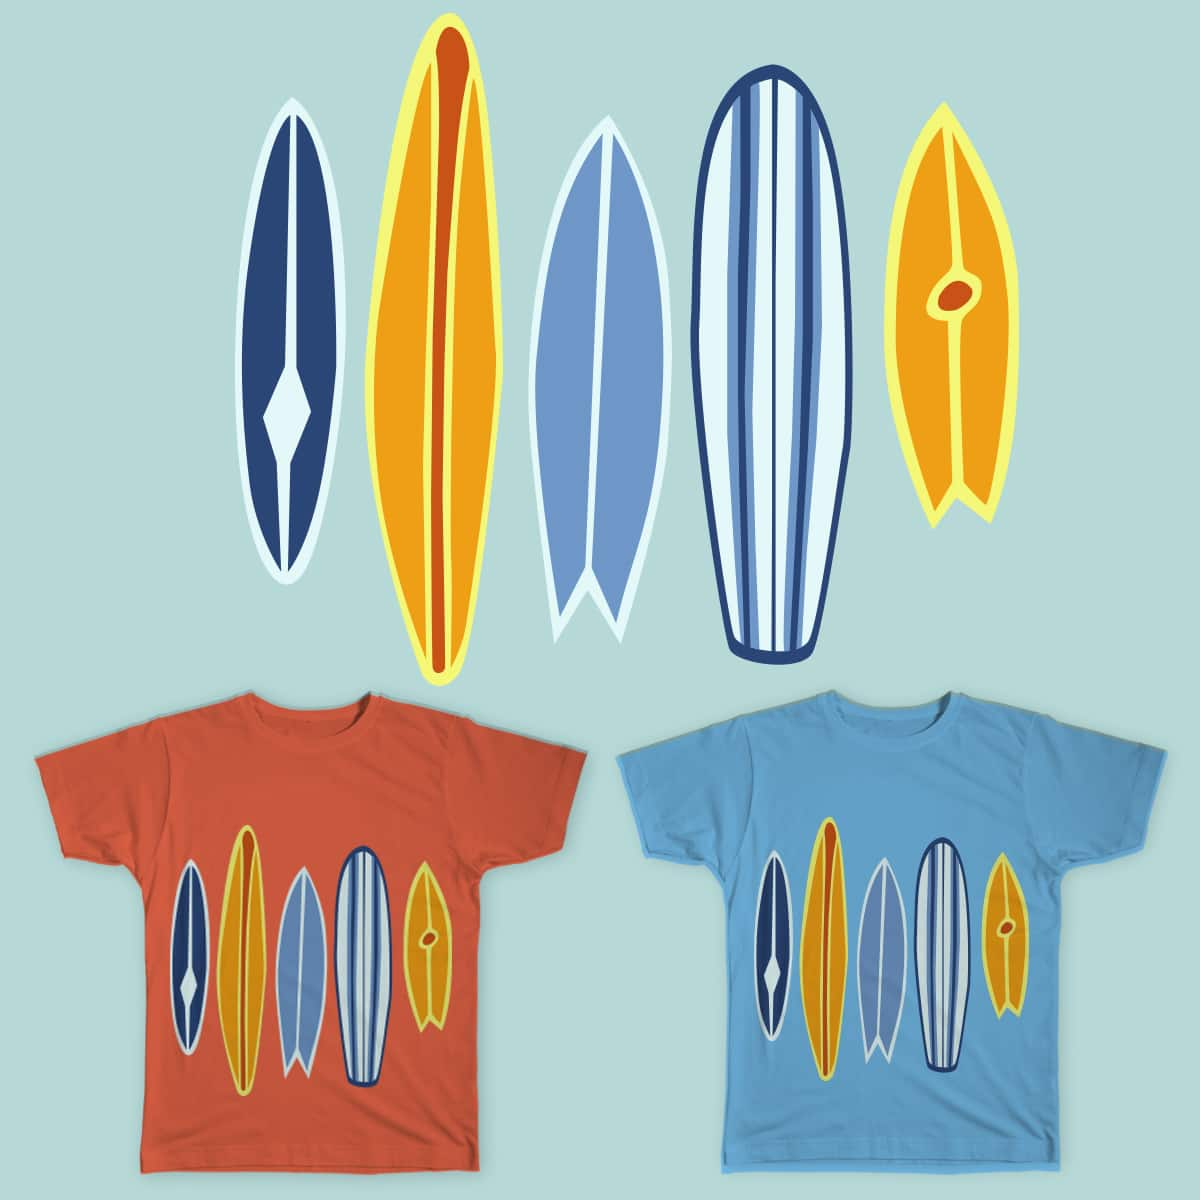 summer time by innasmirnova on Threadless